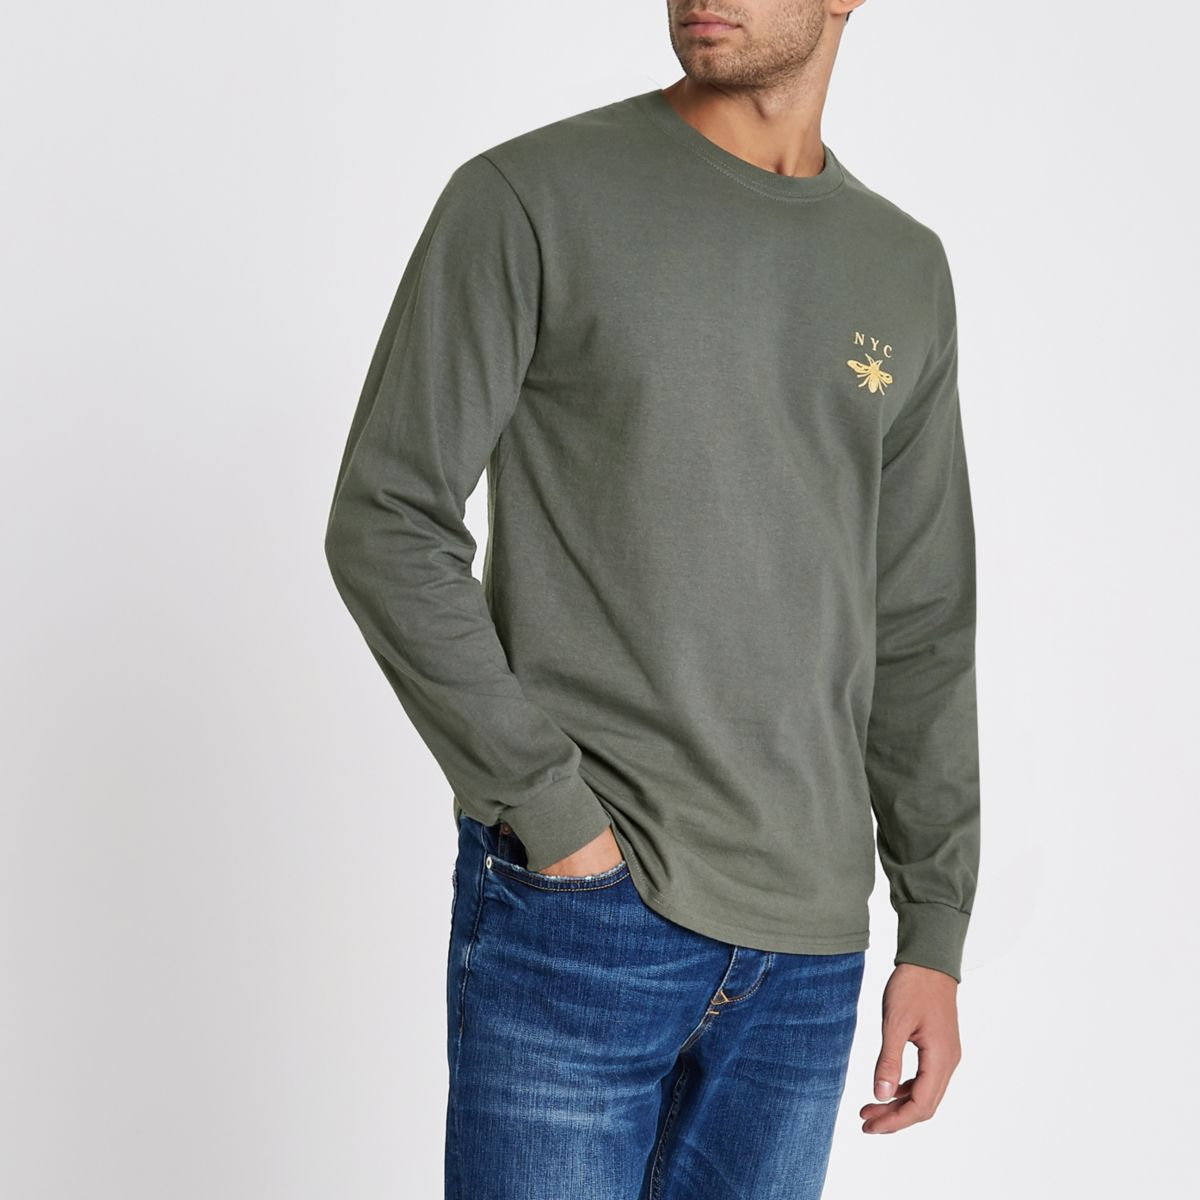 Grey 'NYC' wasp print long sleeve T-shirt